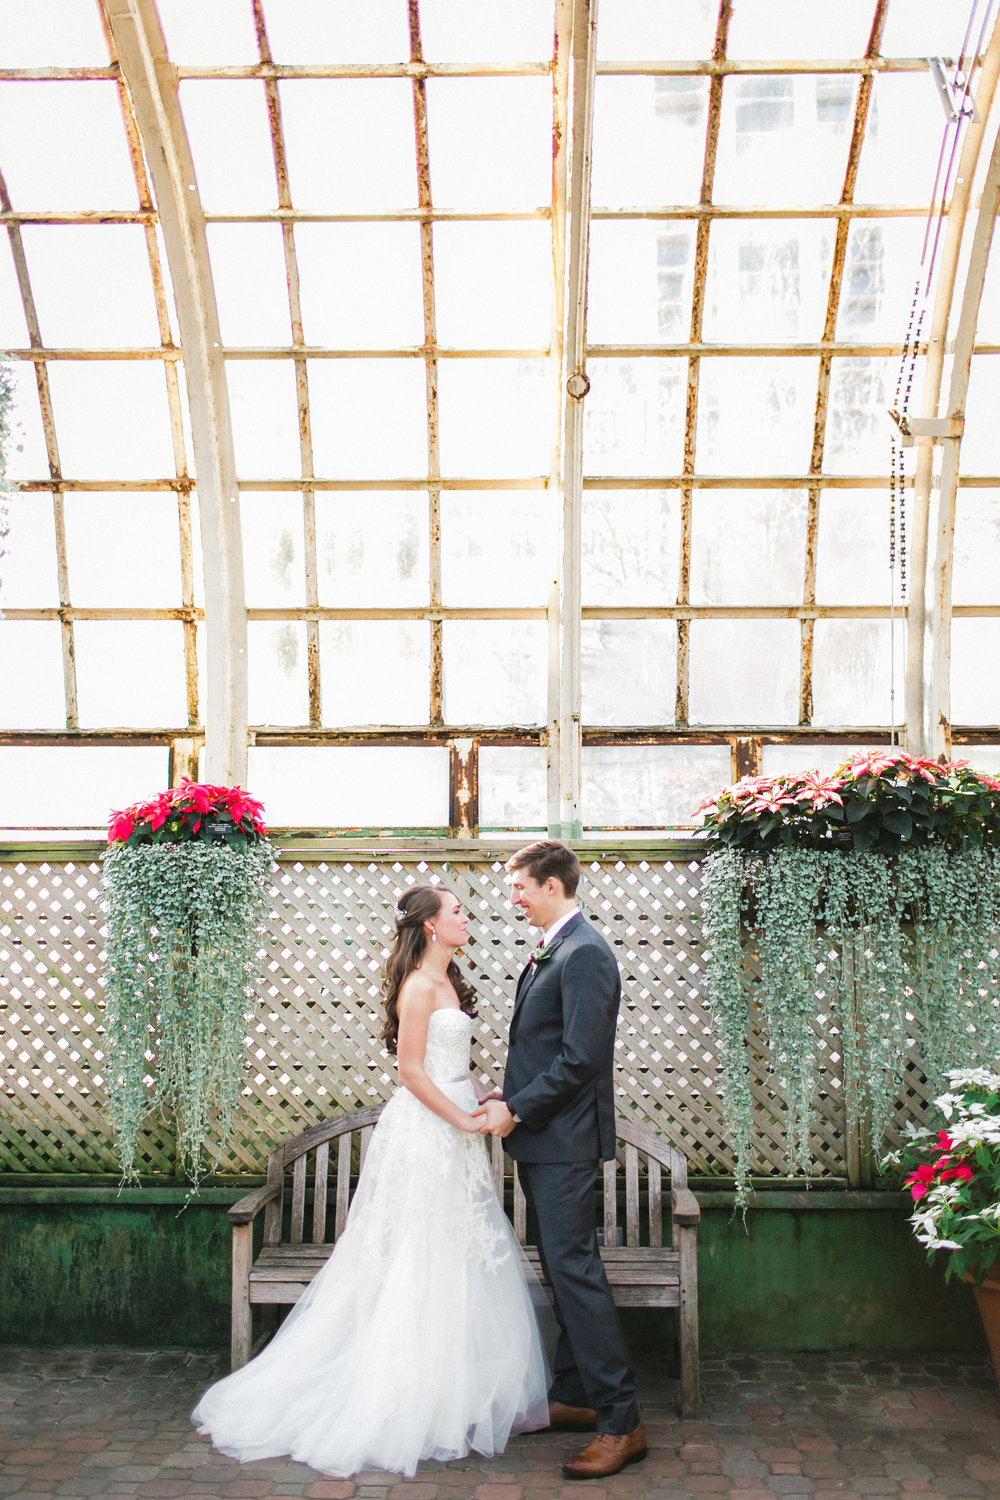 Wedding Portraits in a Conservatory